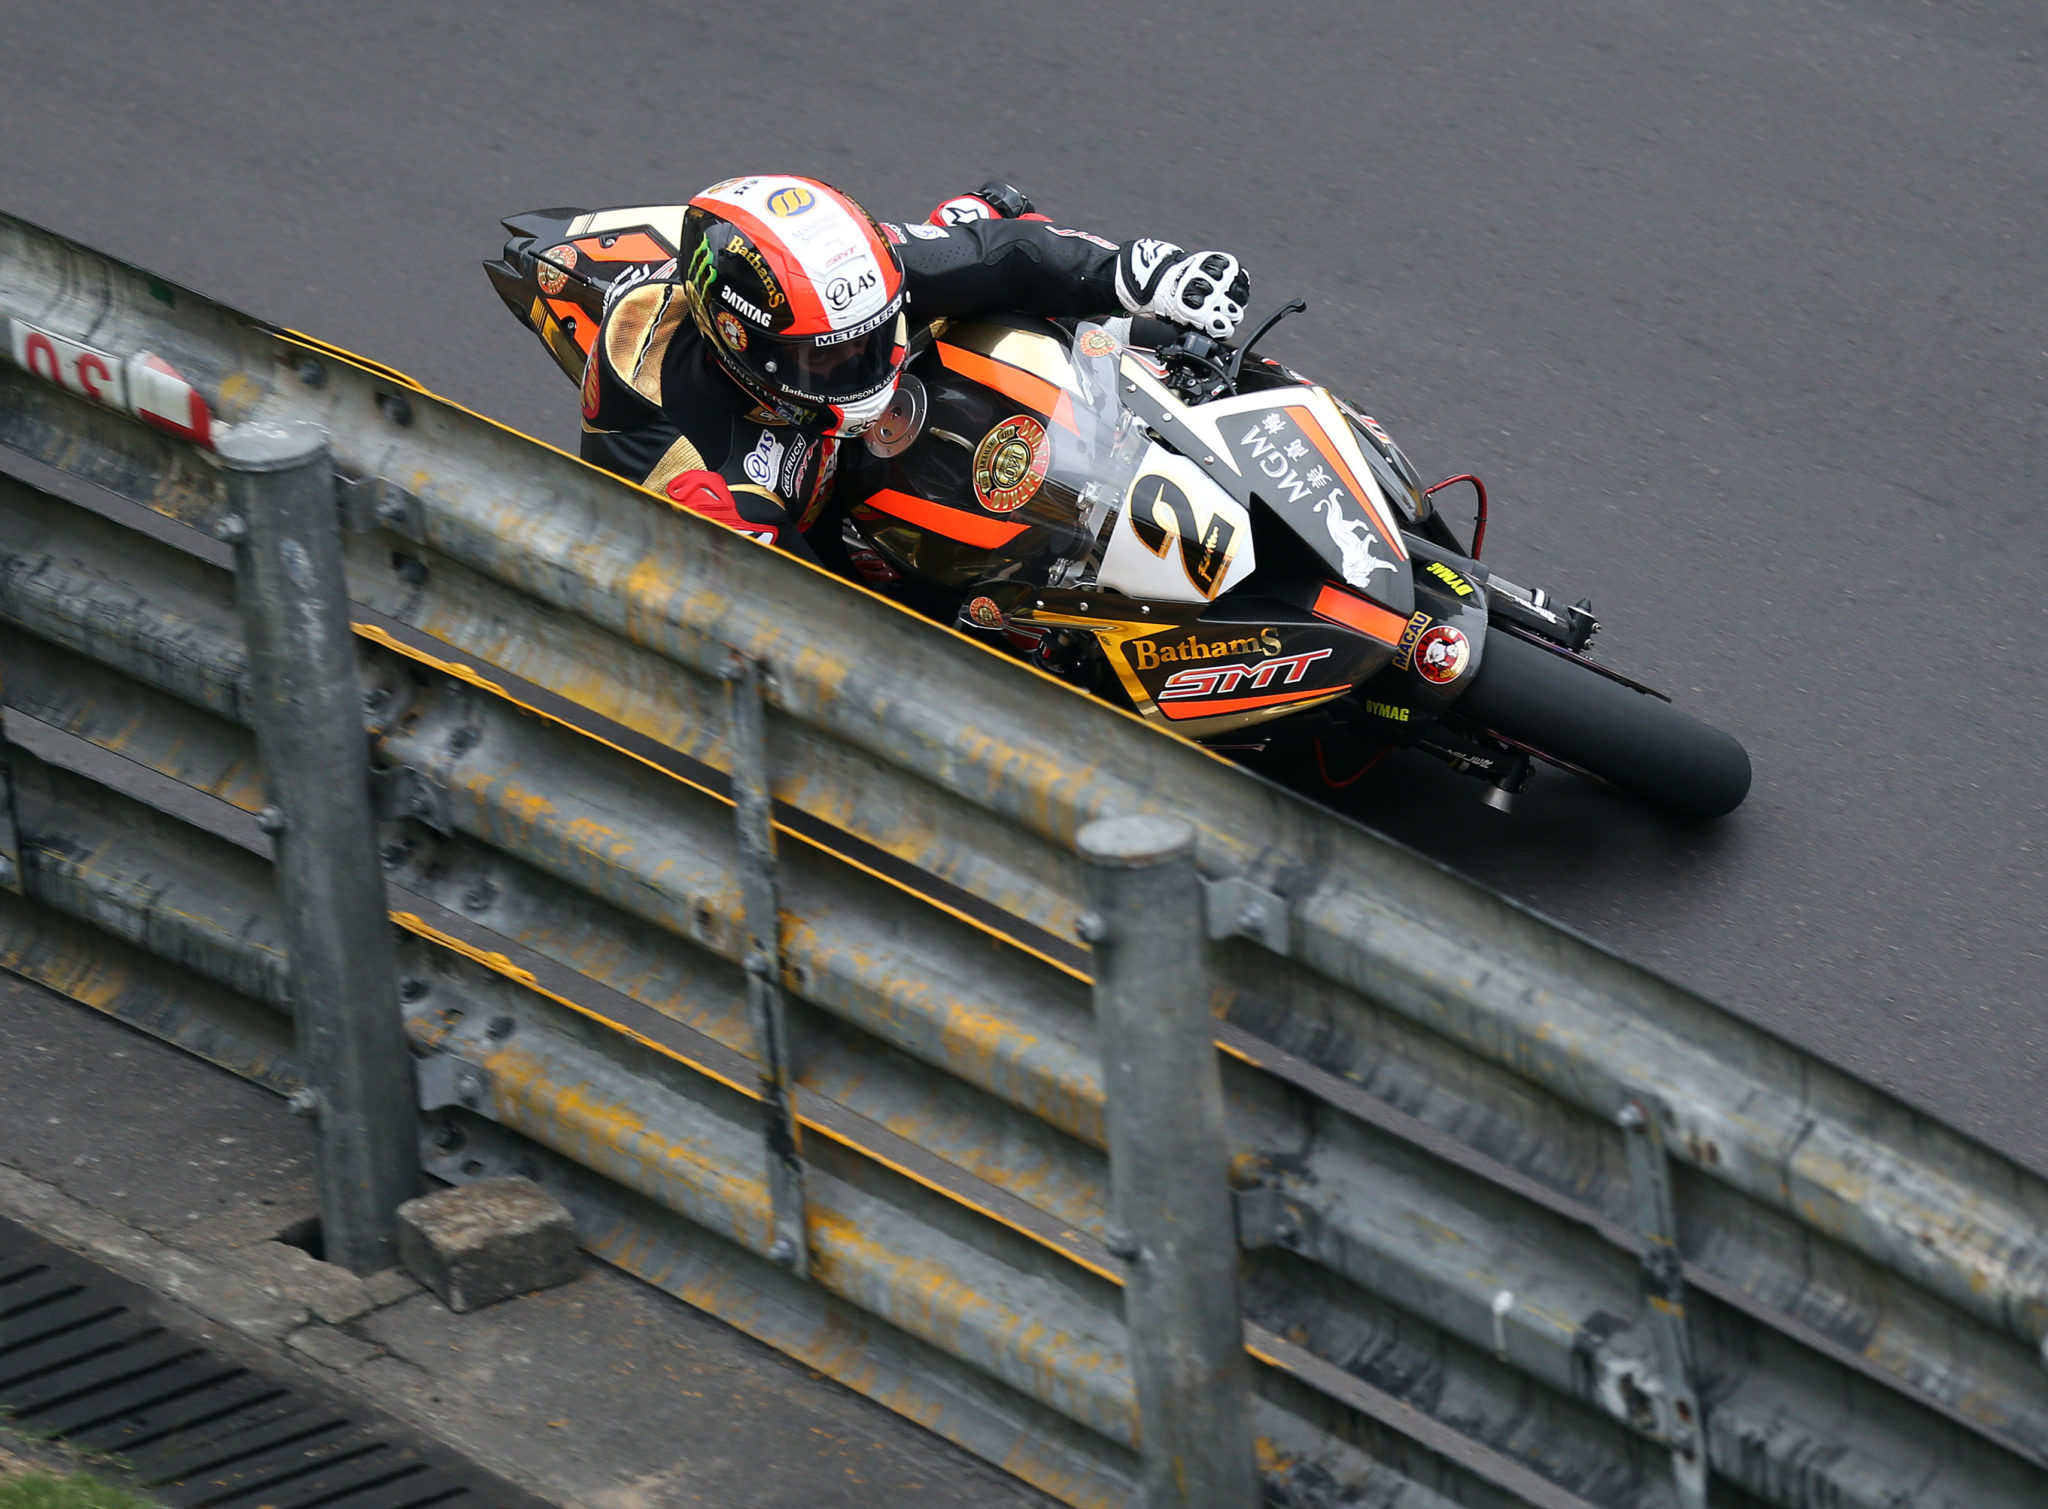 Rutter will be looking for win number 9 credit Sports Bureau of Macau